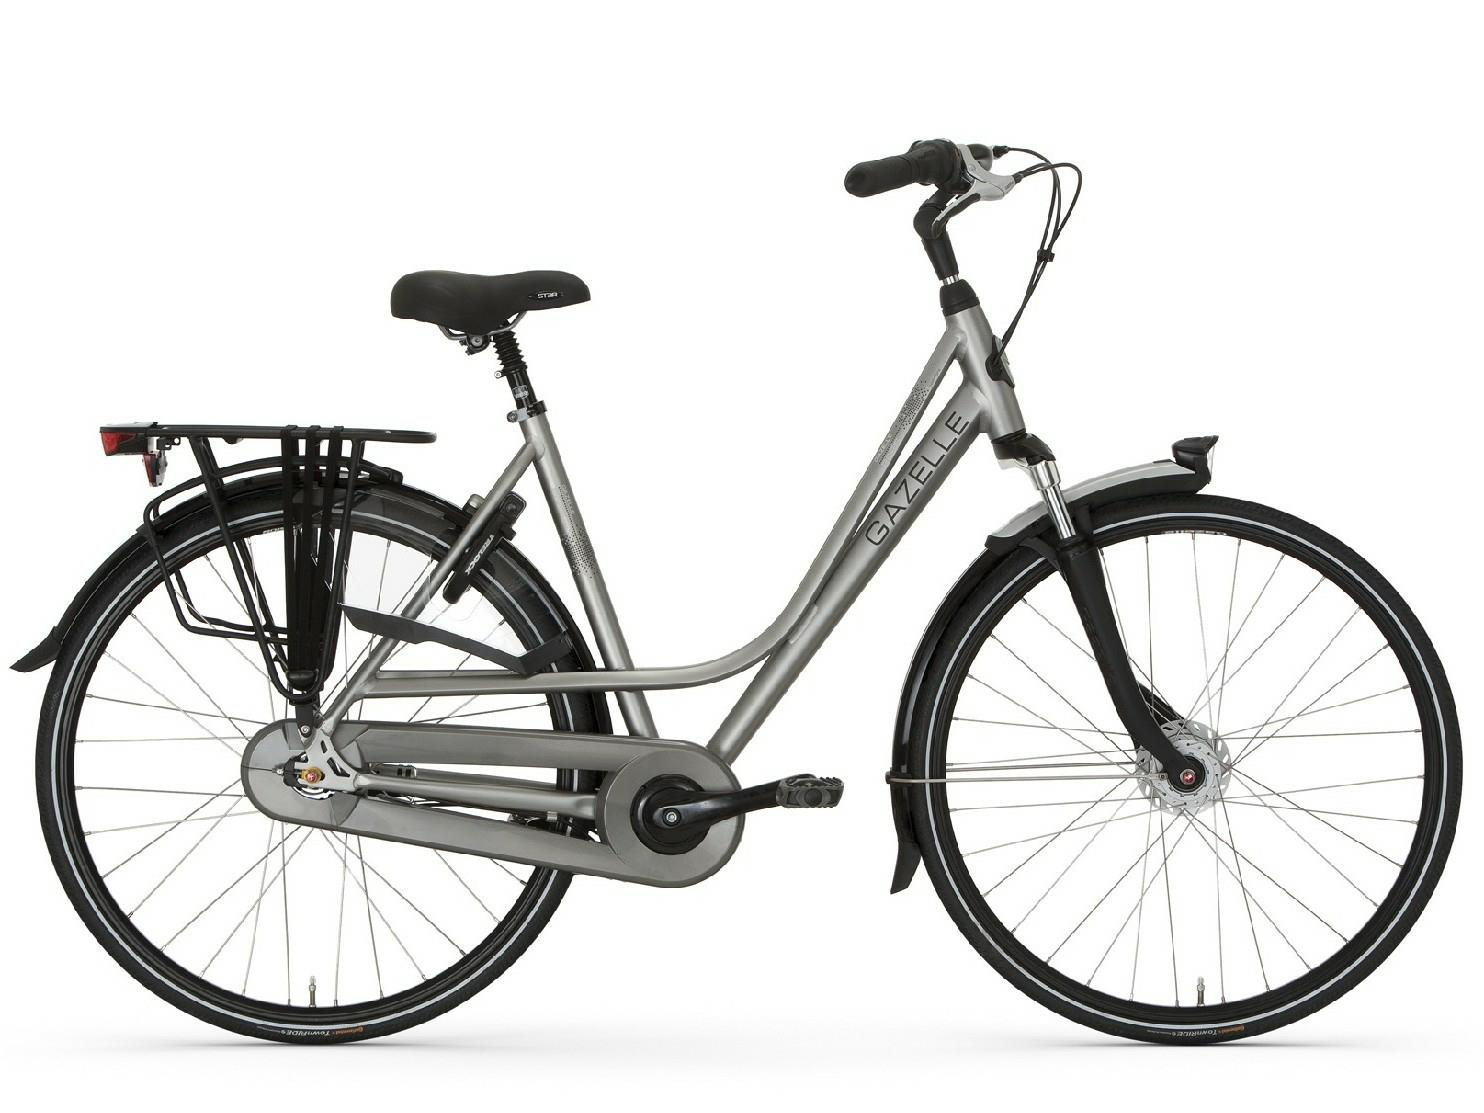 Gazelle Paris bike